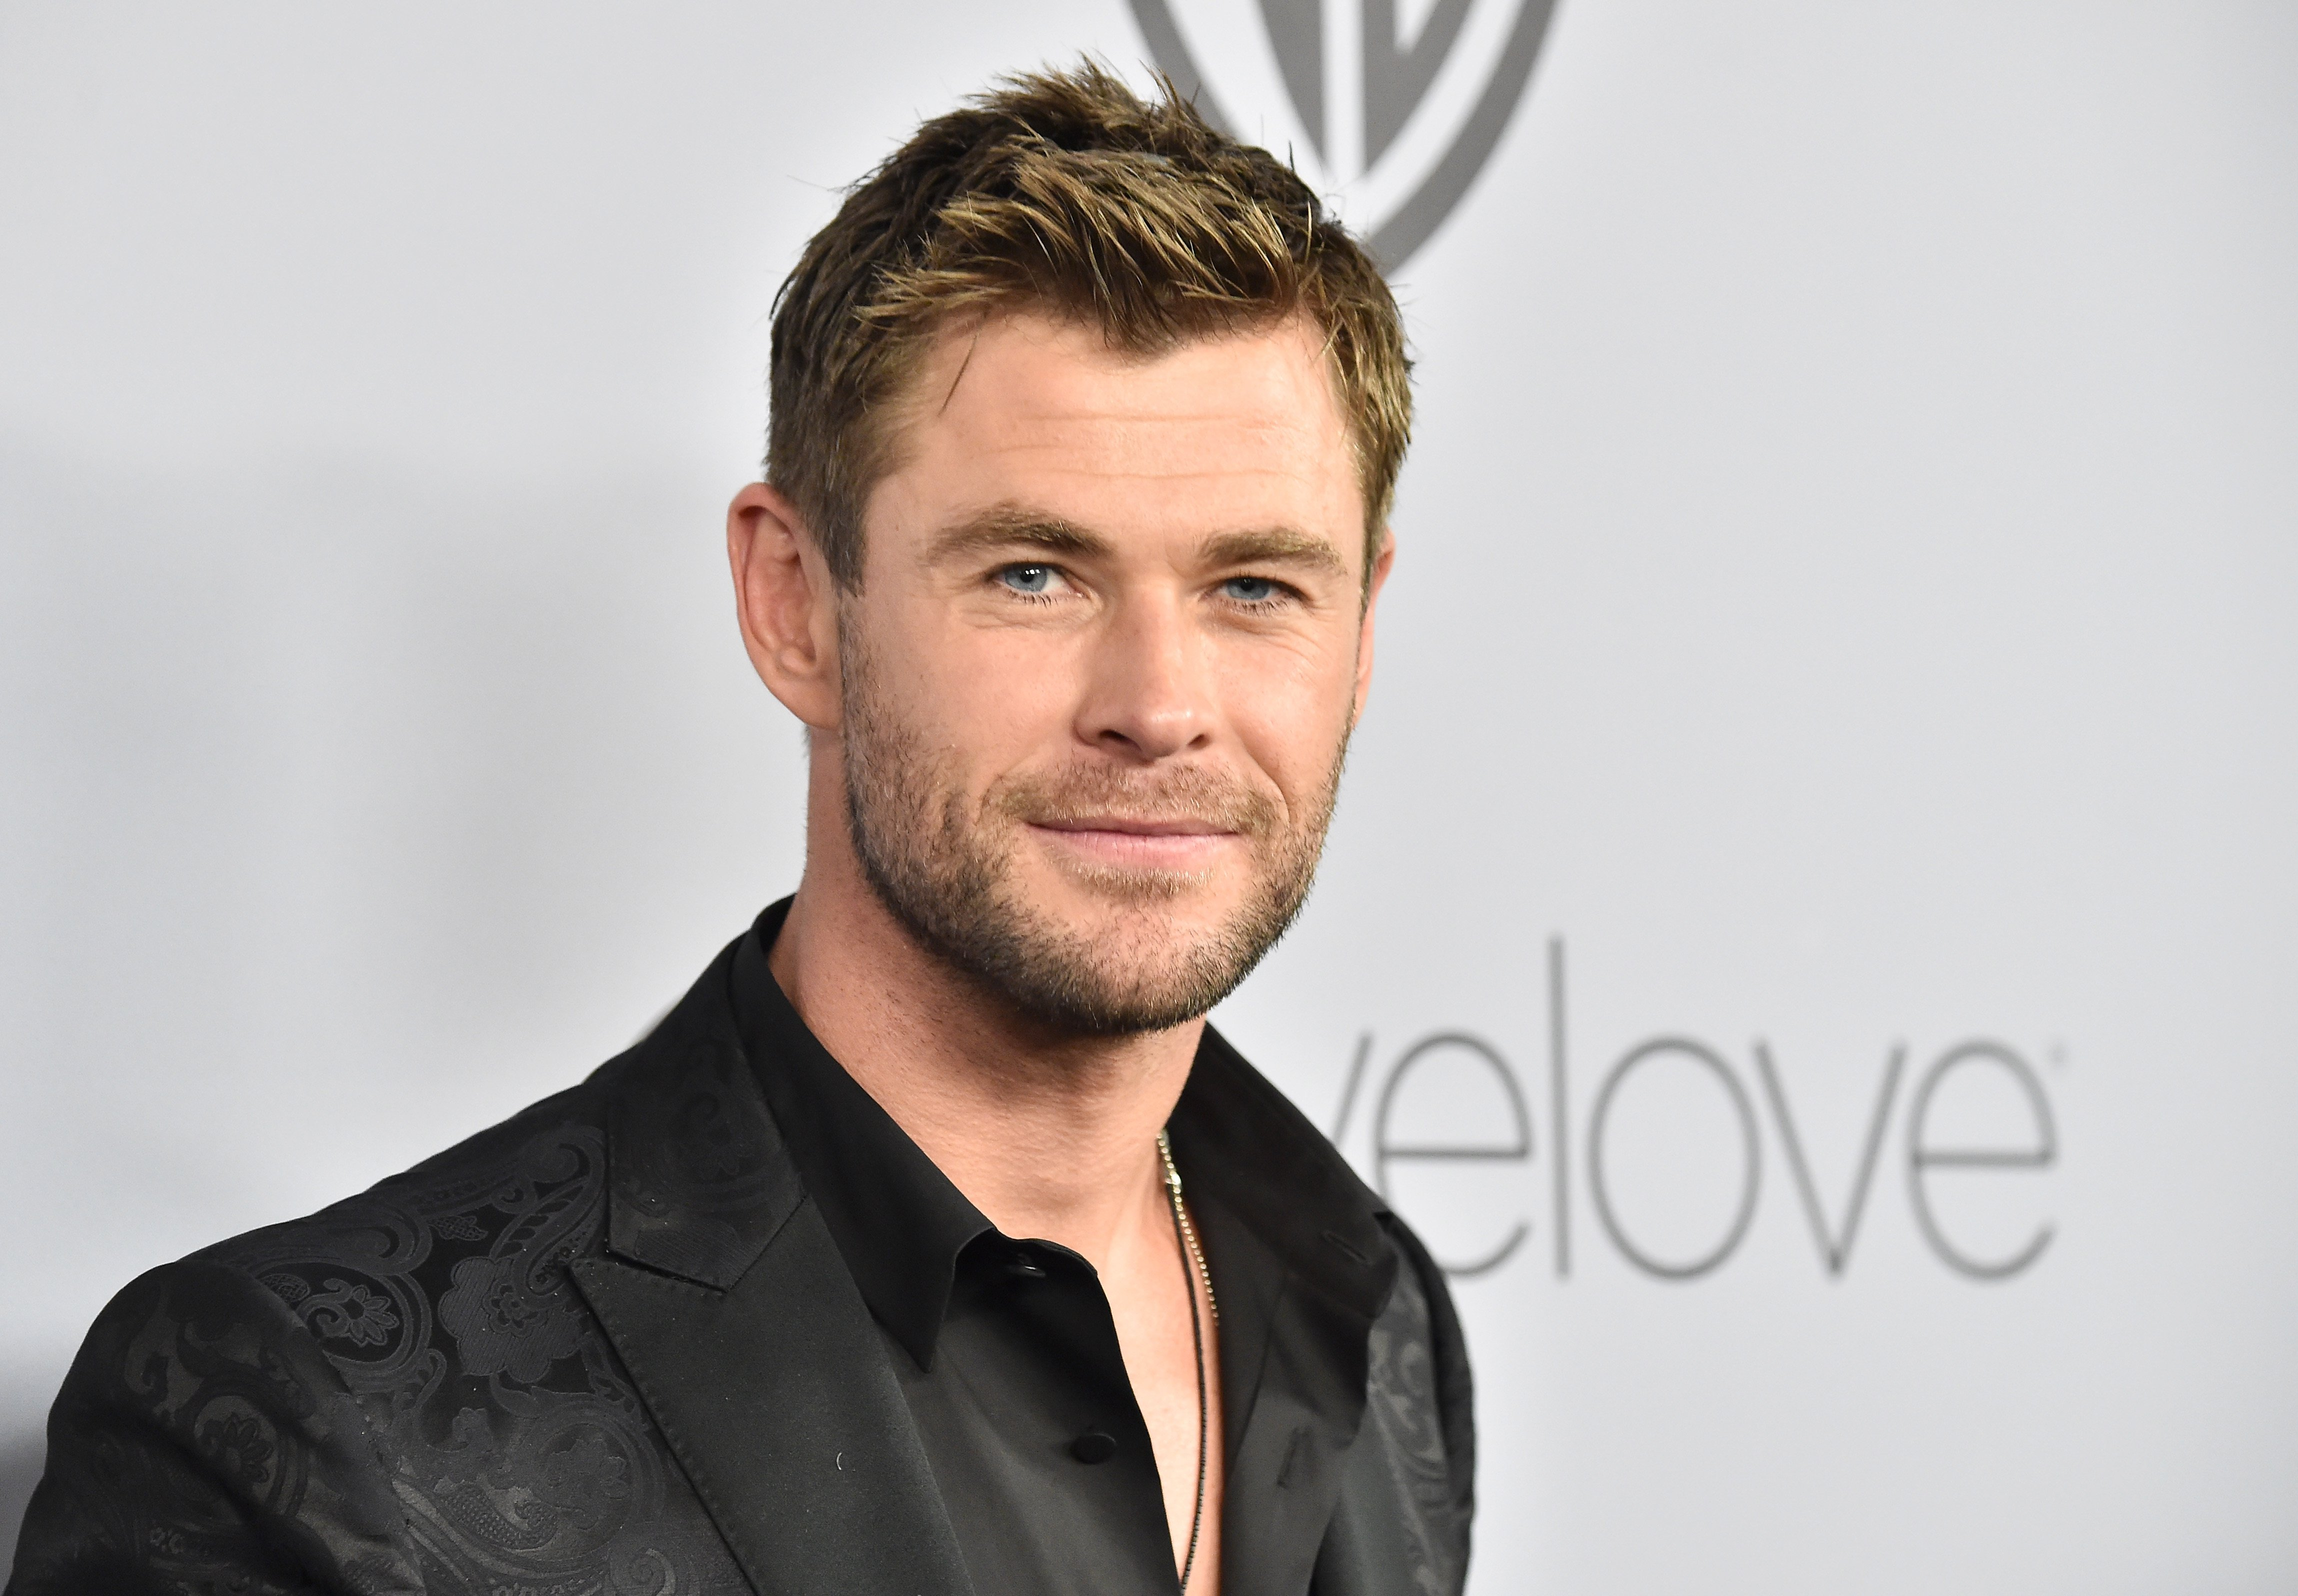 Chris Hemsworth attends 19th Annual Post-Golden Globes Party on January 7, 2018, in Beverly Hills, California. | Source: Getty Images.